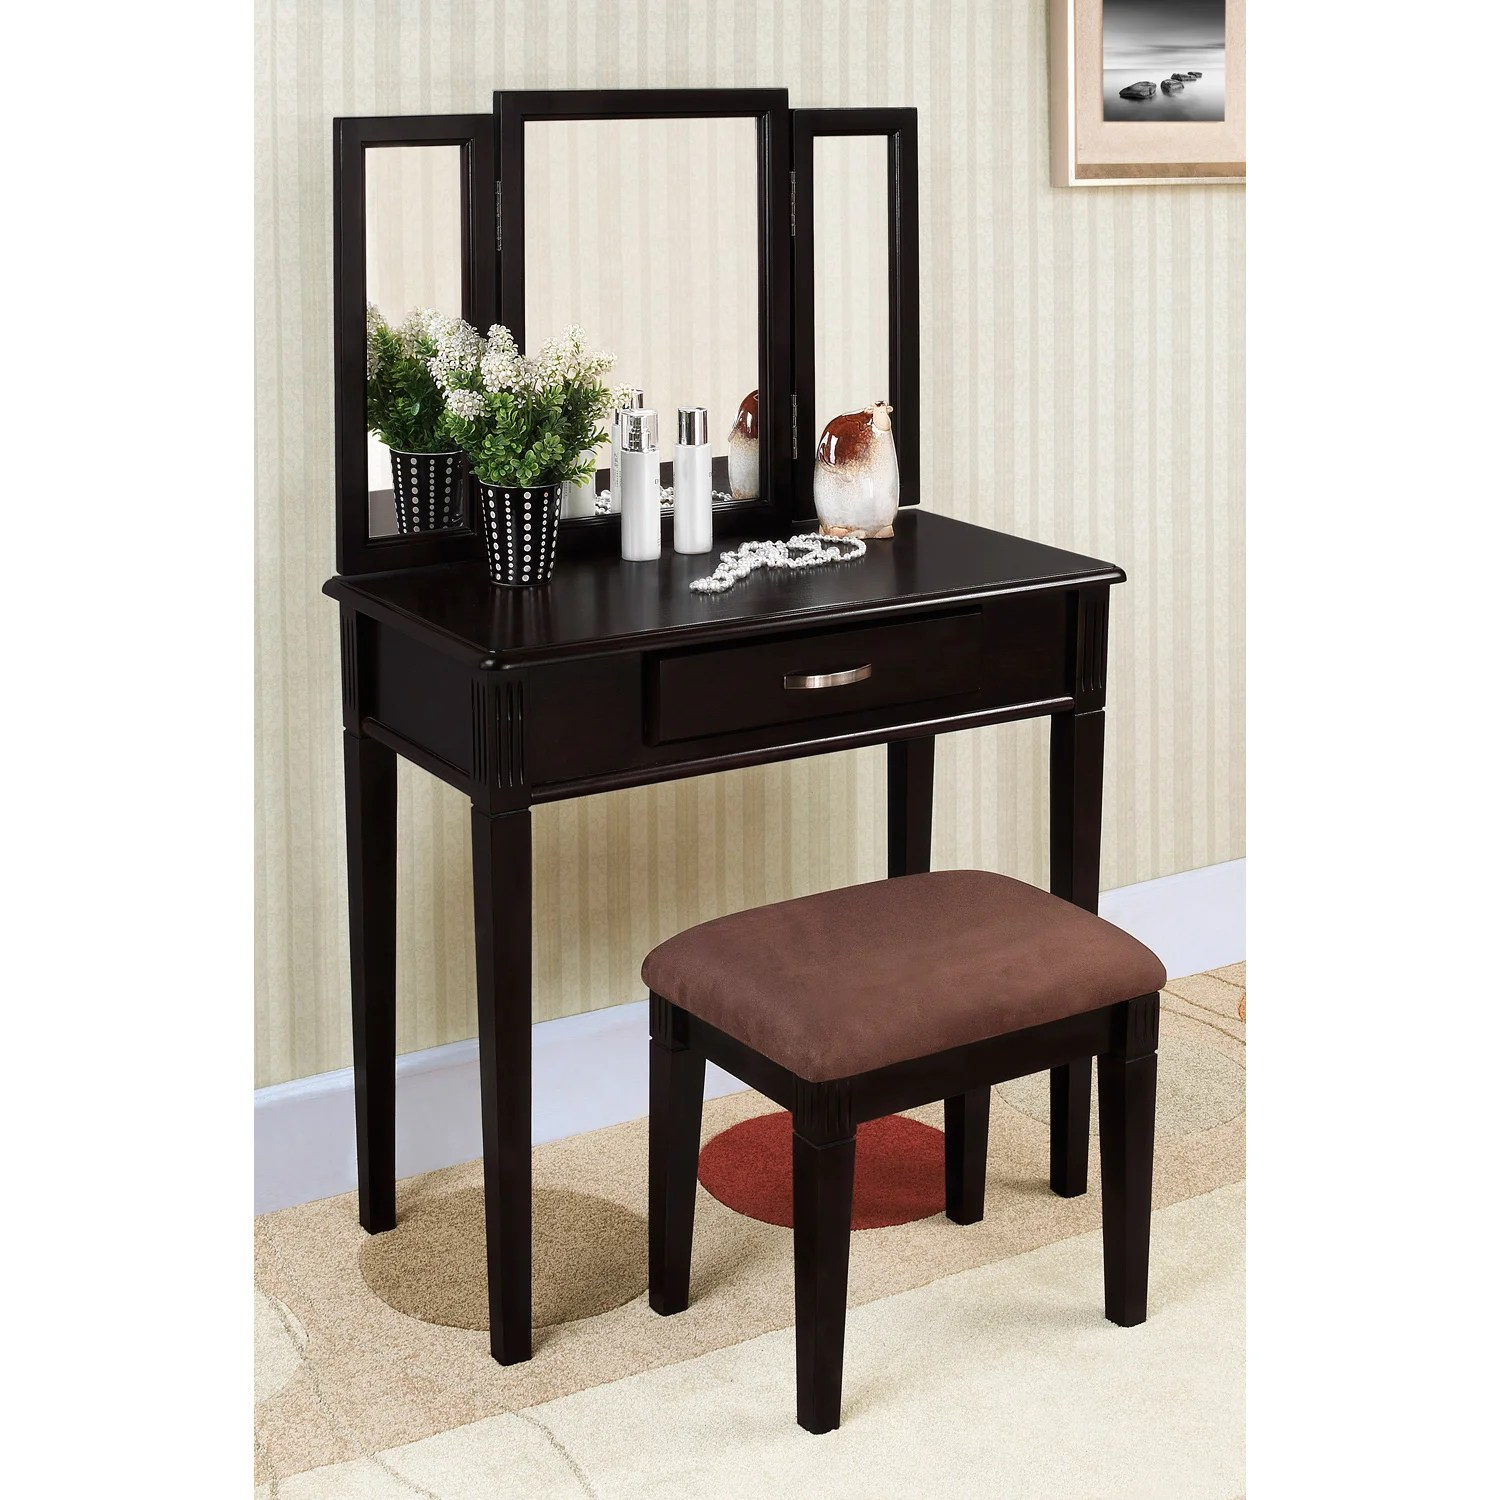 3 Piece Vanity Mirror Black Finish Tri Mirror Vanity Table And Stool 14257750